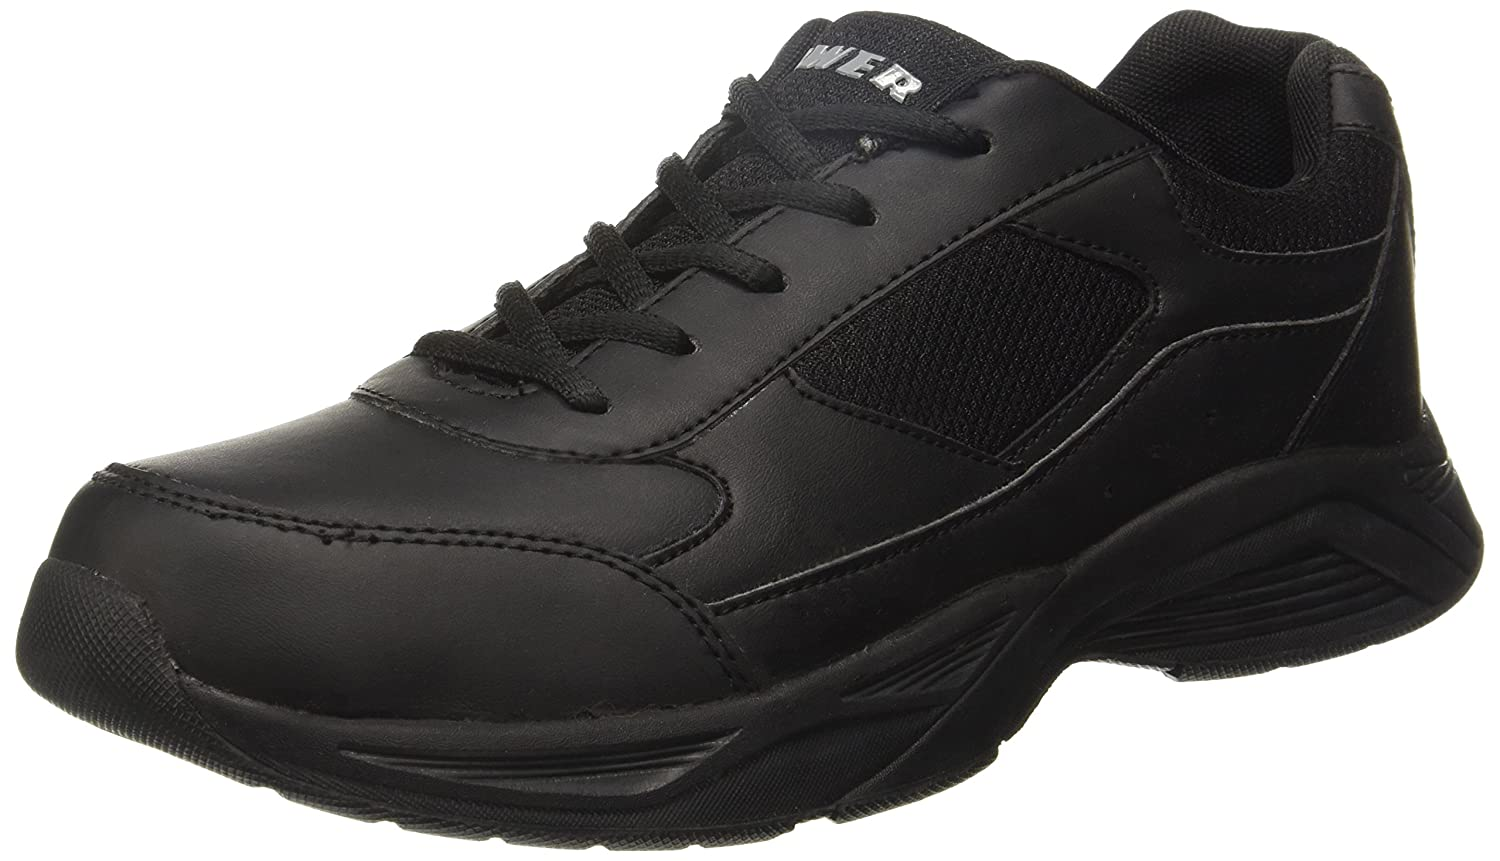 Pw Champ Black Running Shoes